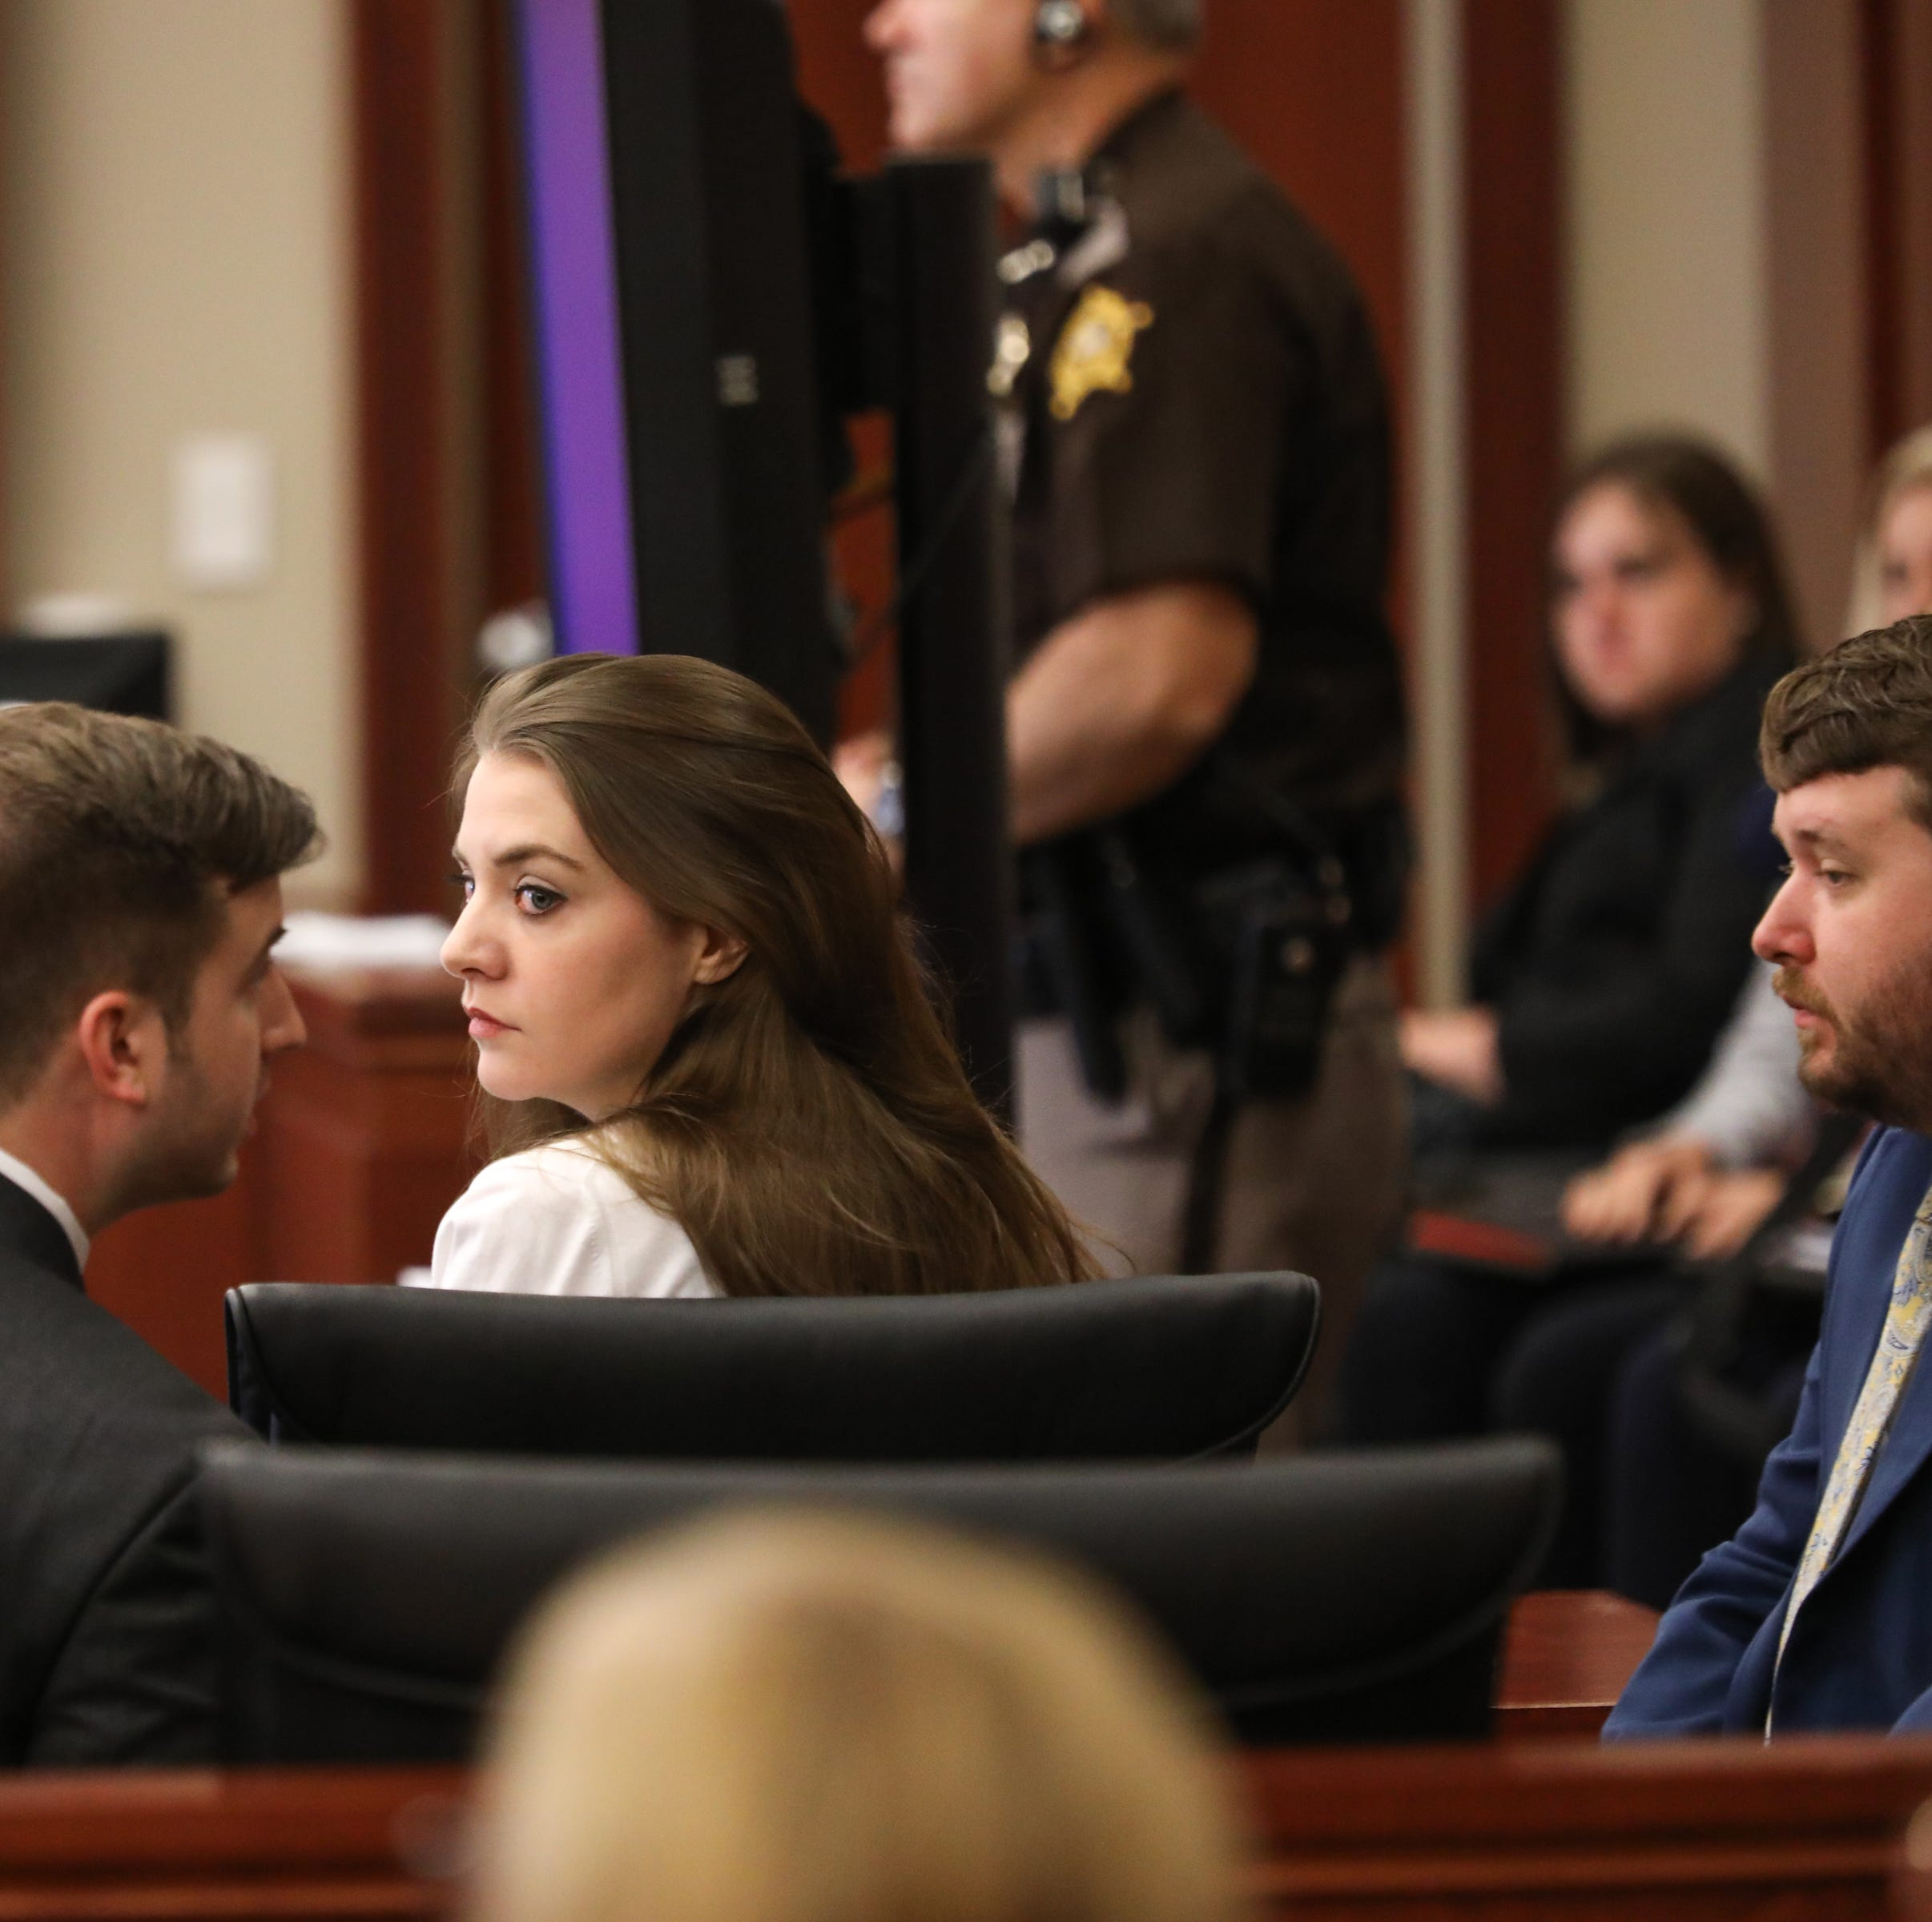 Shayna Hubers retrial: 'Take her word for it. Her words,' prosecution says